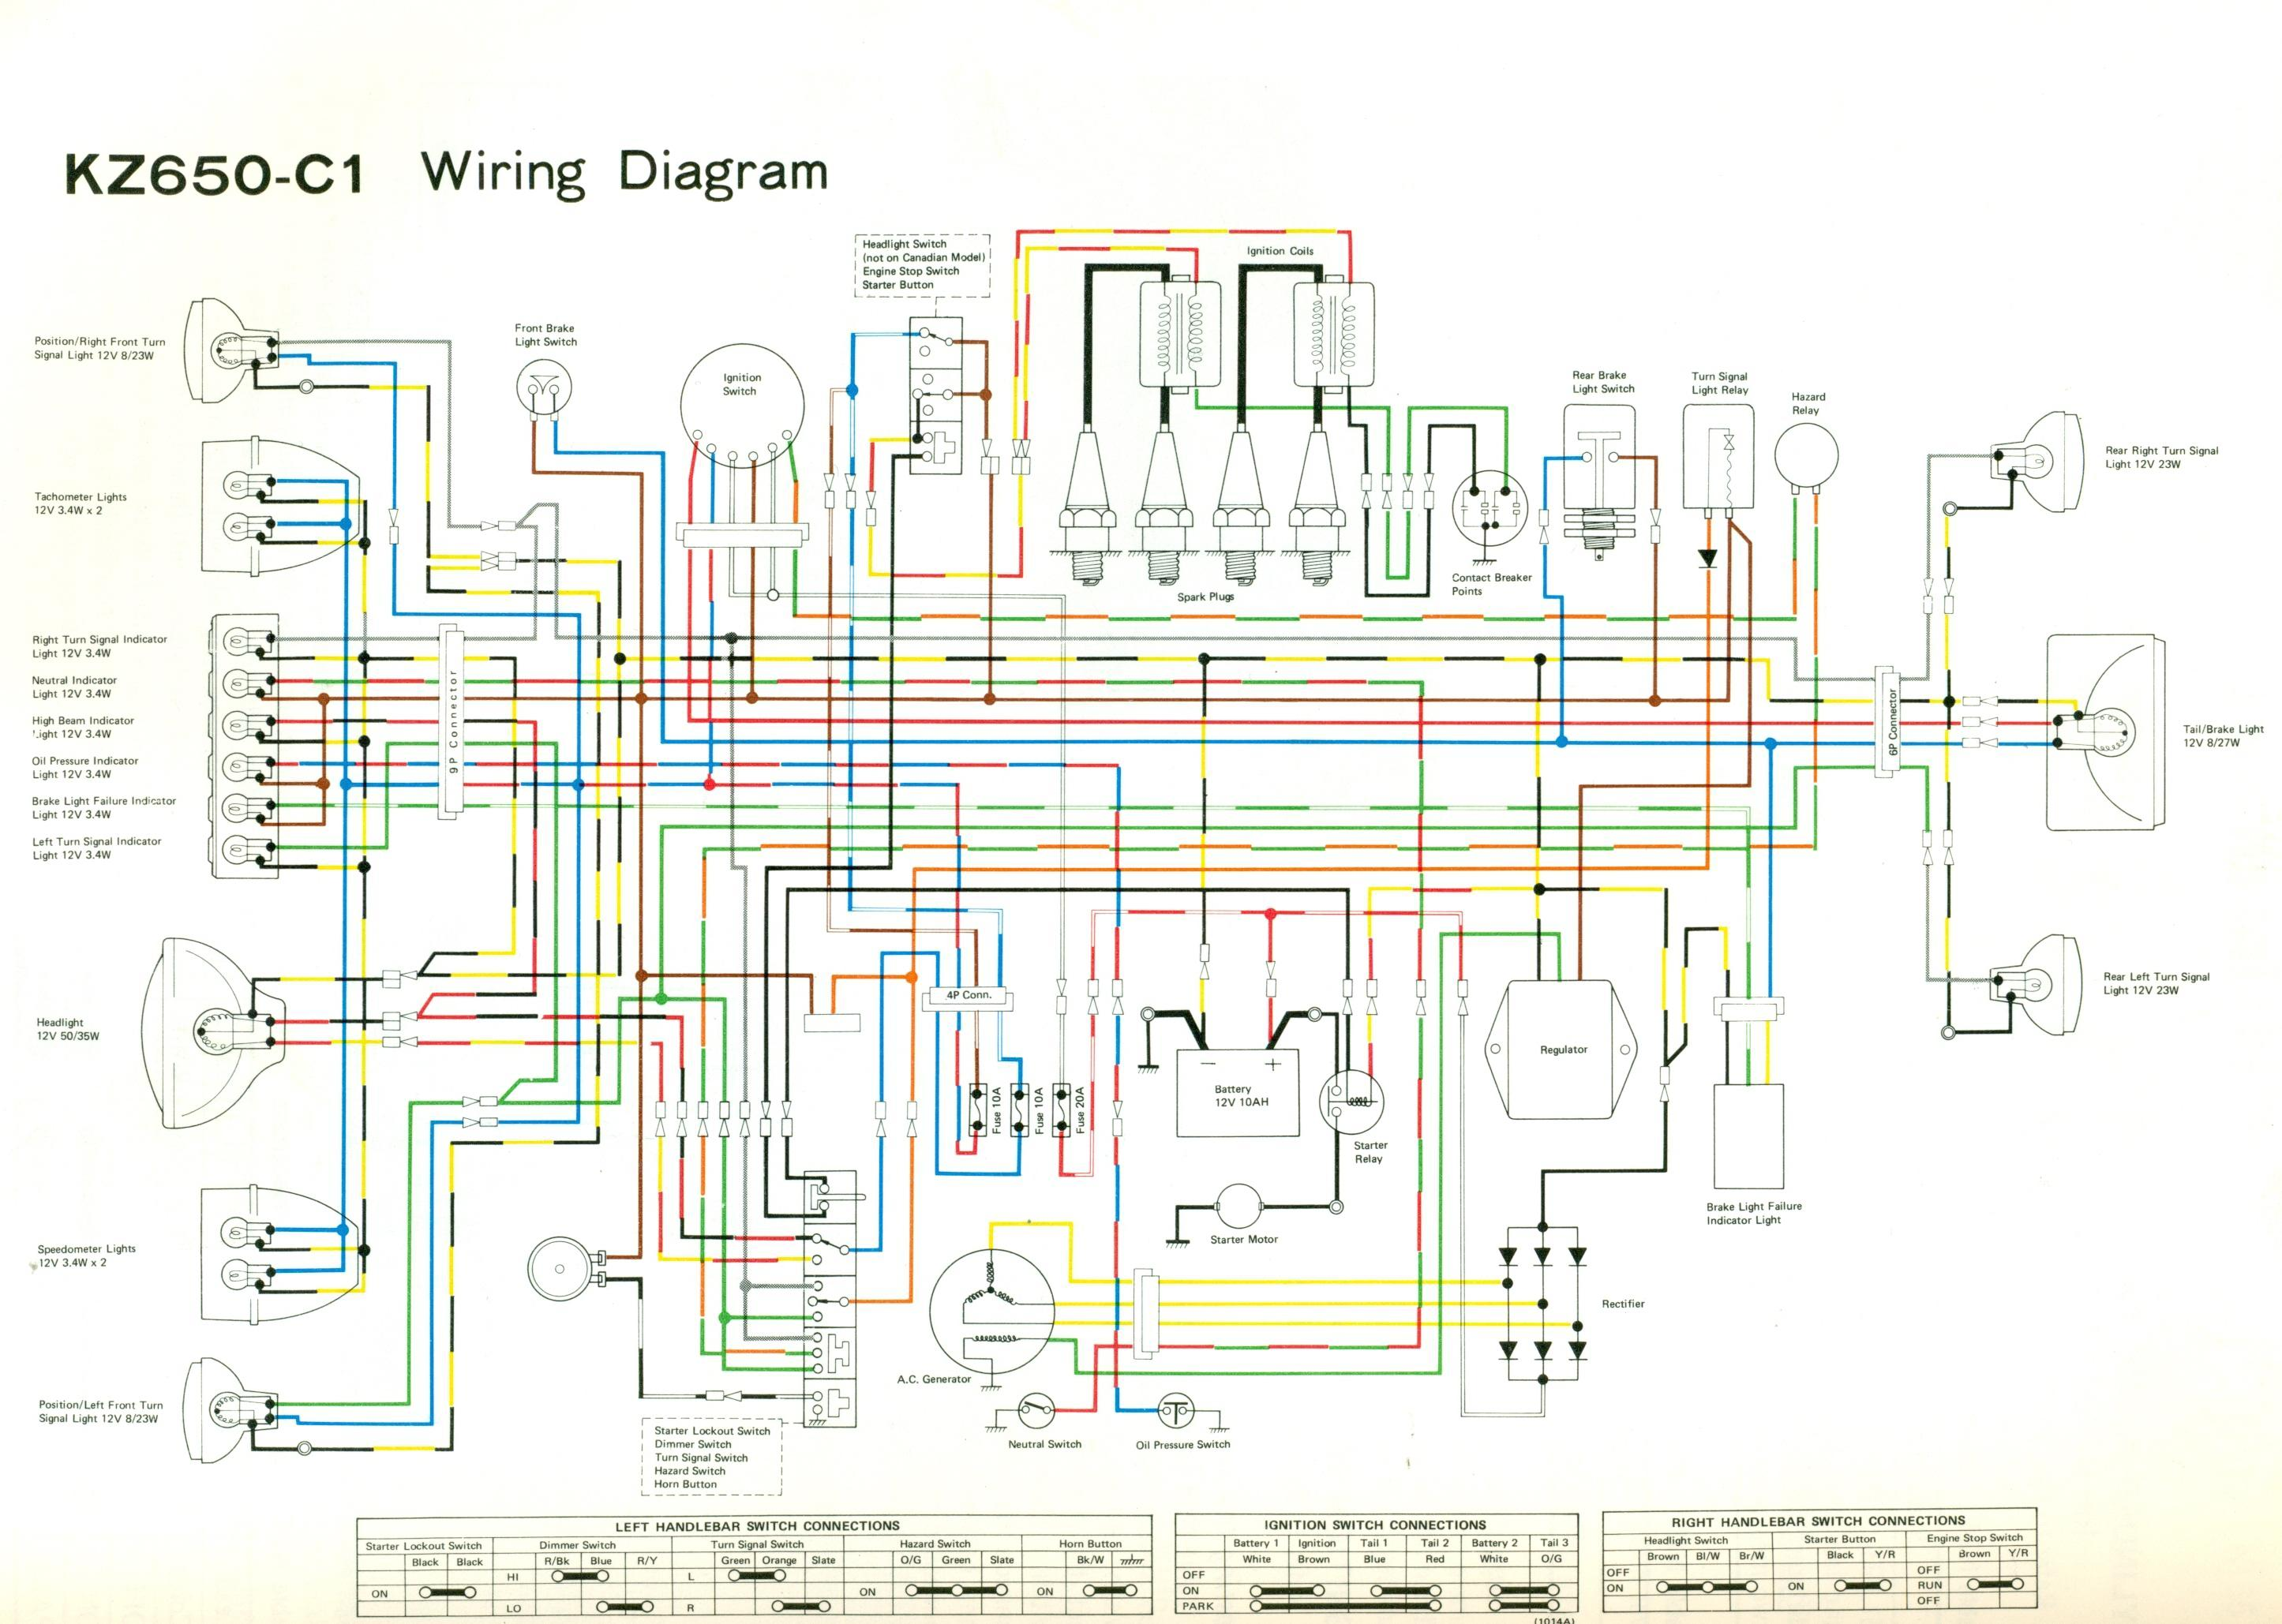 Diagram Wiring Kz650 E1 Trusted Rh Dafpods Co Arctic Cat Z1 Basic: Wiring  Diagram For